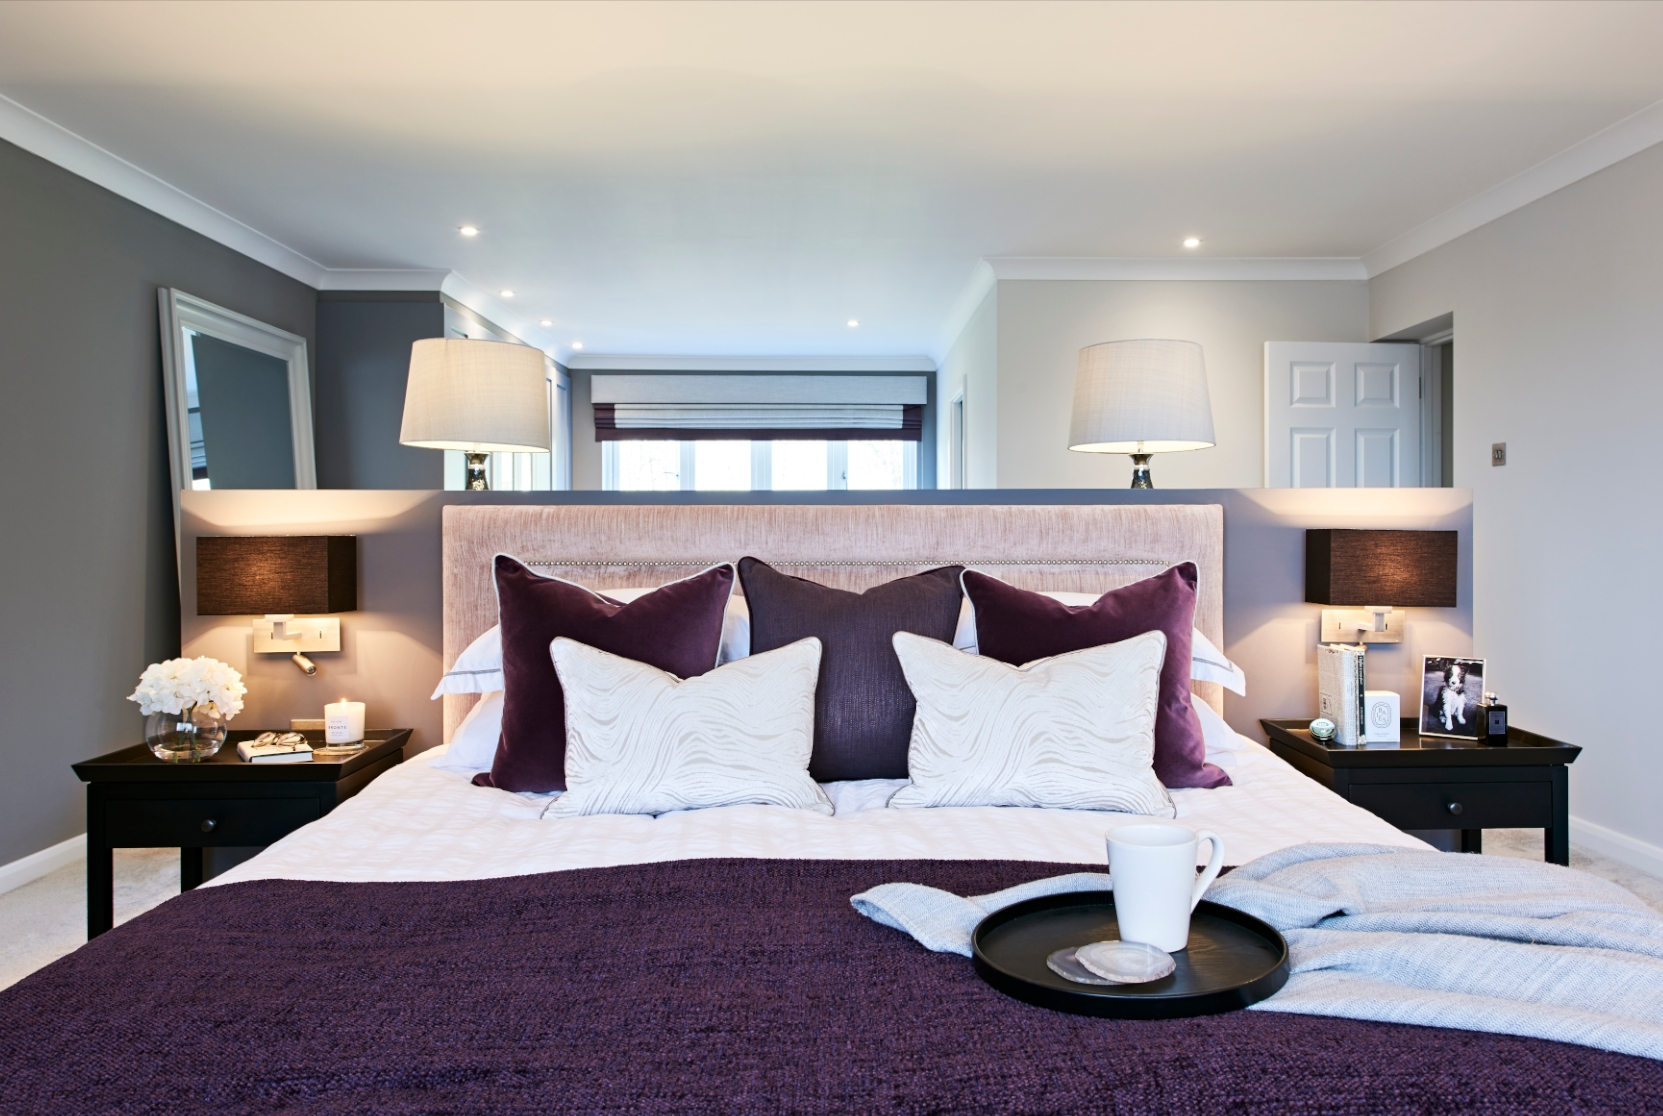 Master bedroom superking purple throw - Interior Design